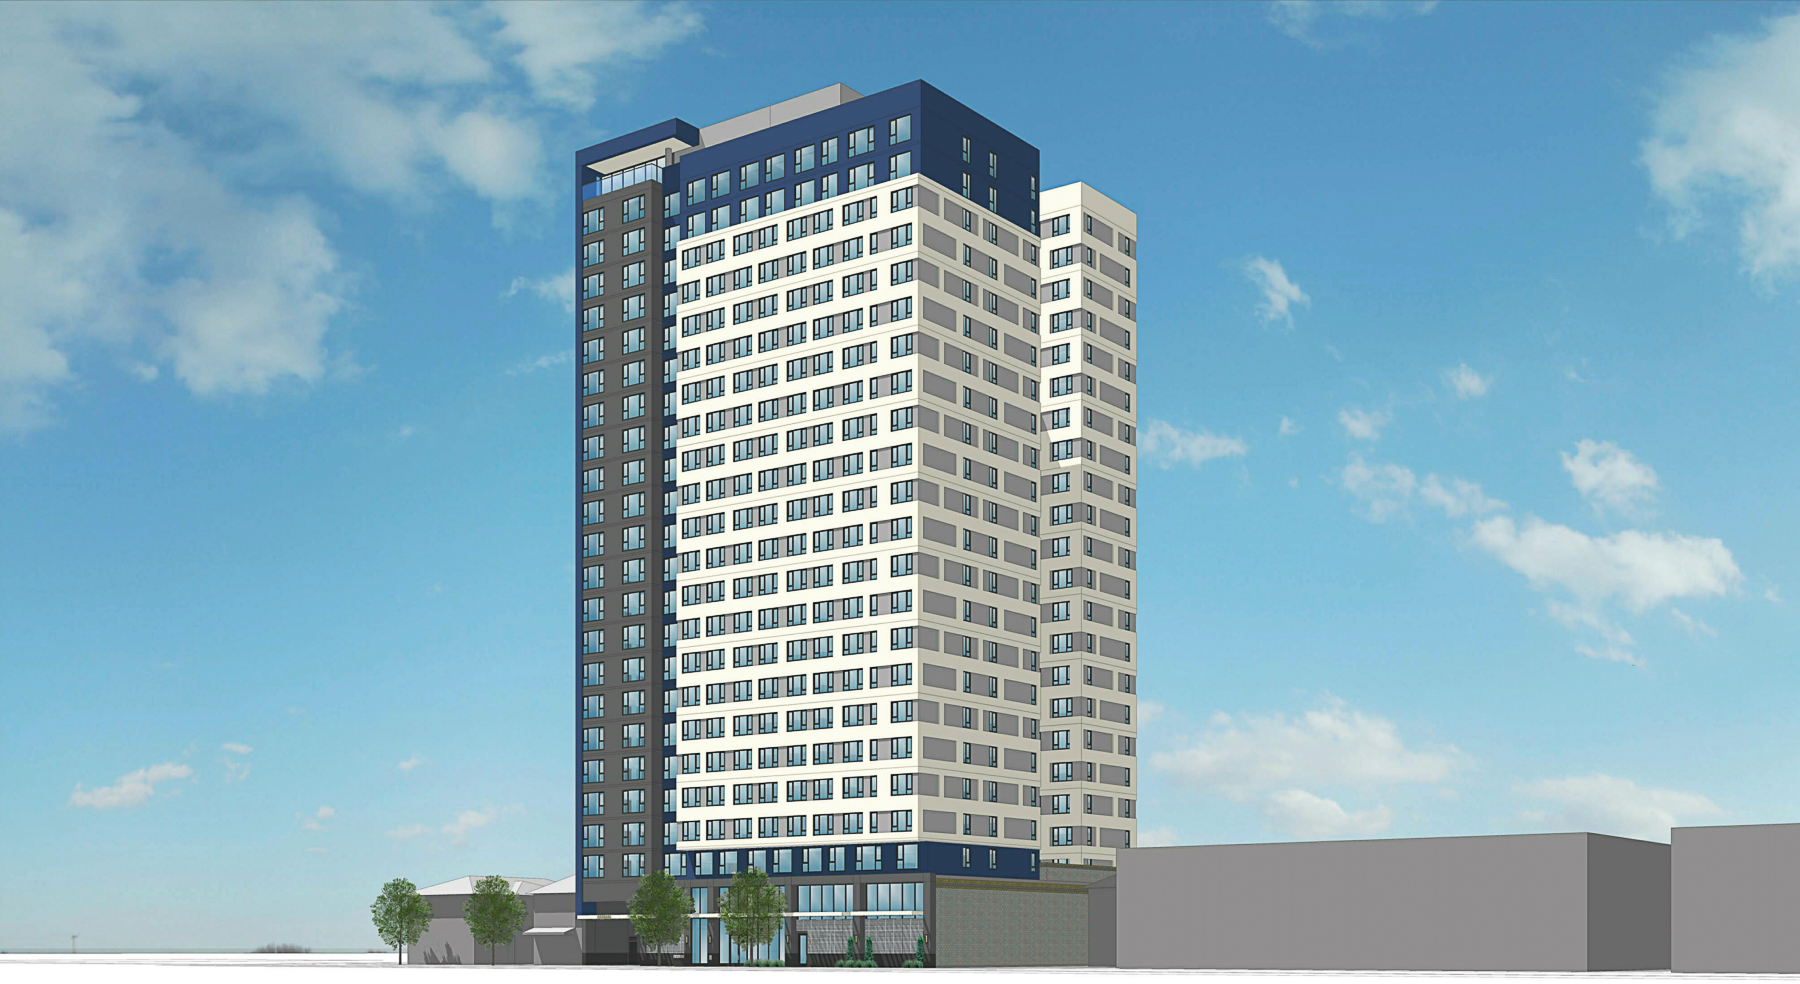 The Mark at 475 South Fourth Street view with lobby entrances, rendering by BDE Architecture